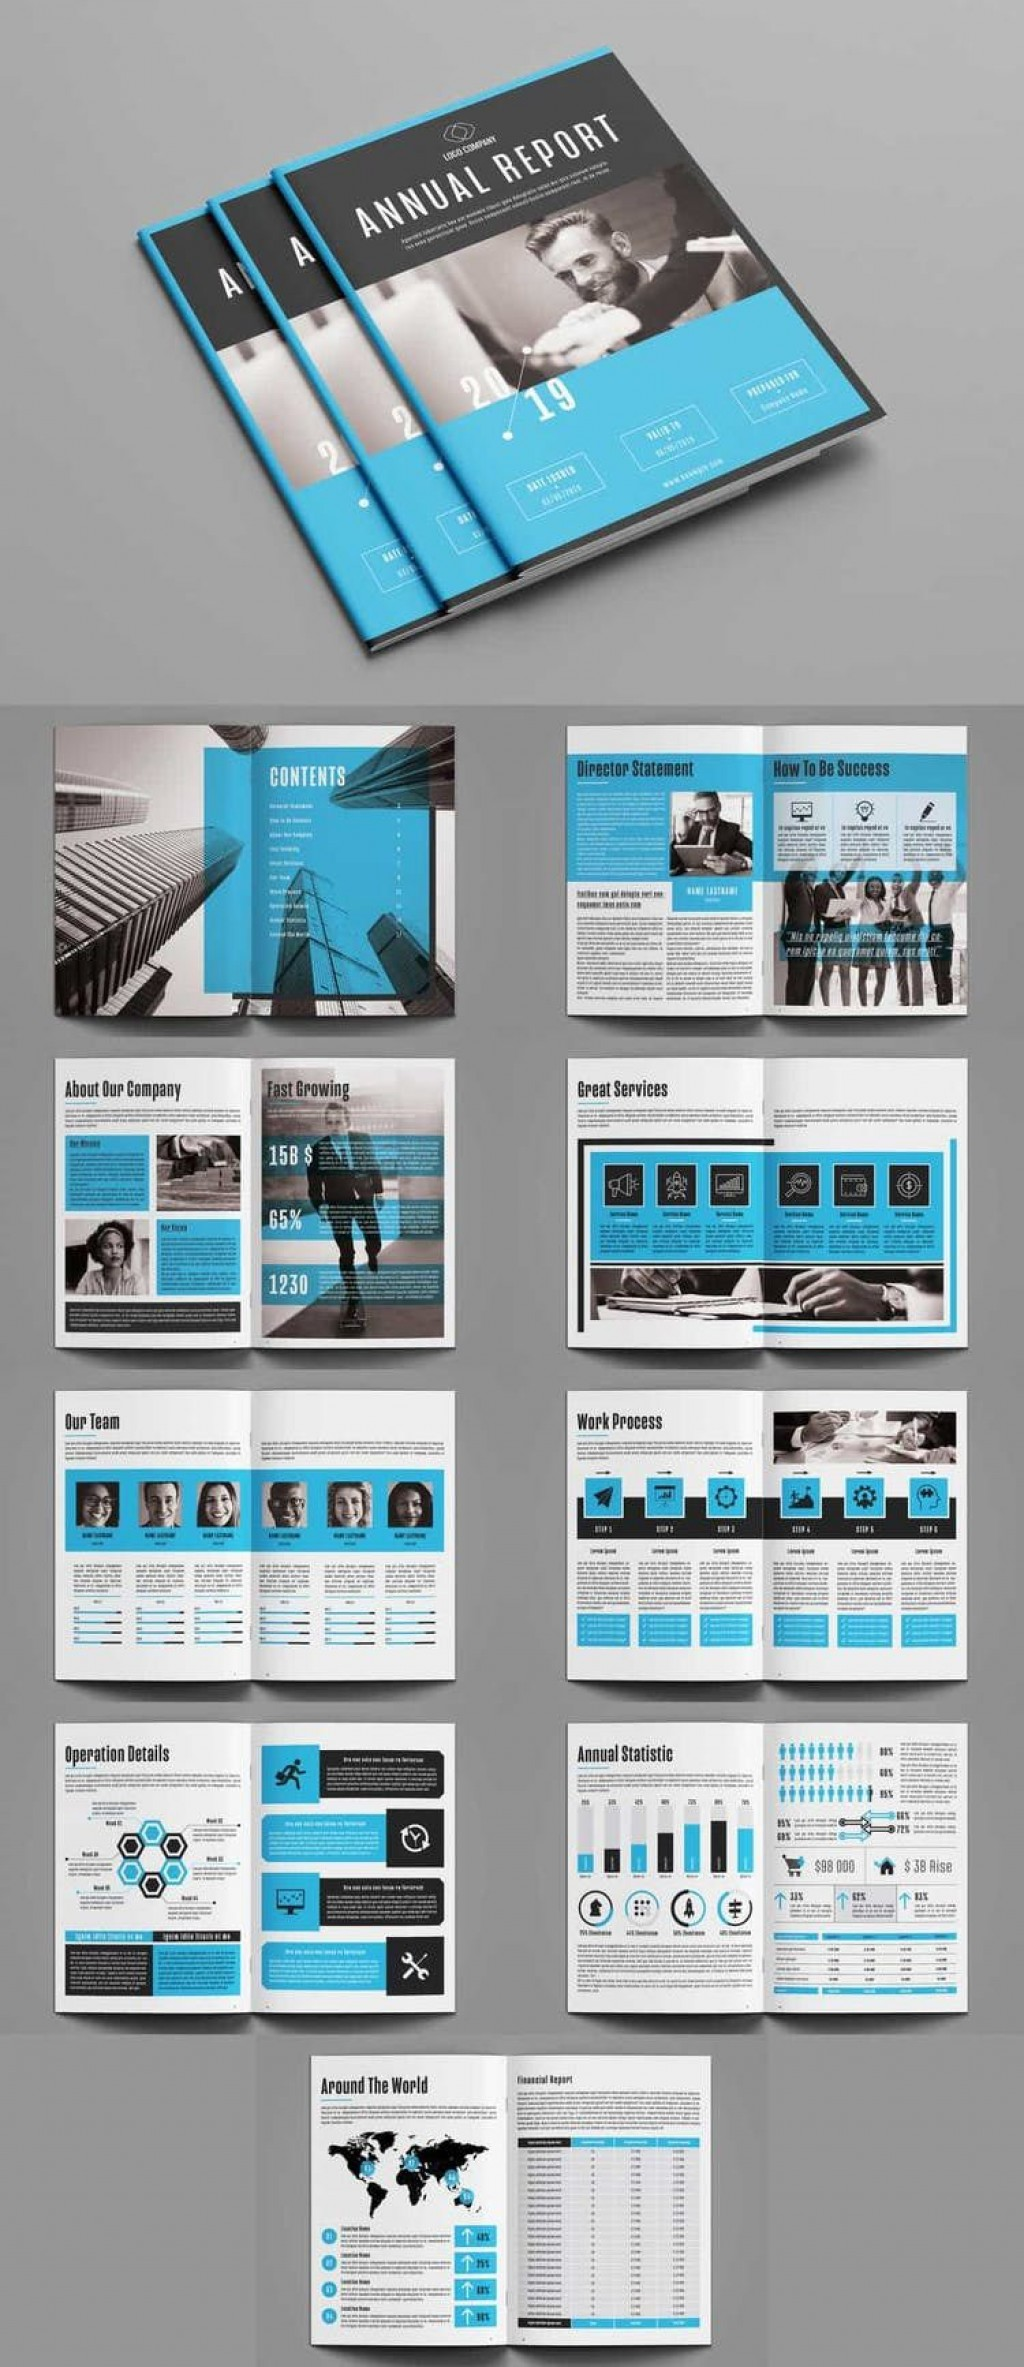 004 Shocking Annual Report Design Template Idea  Templates Word Timeles Free Download InLarge